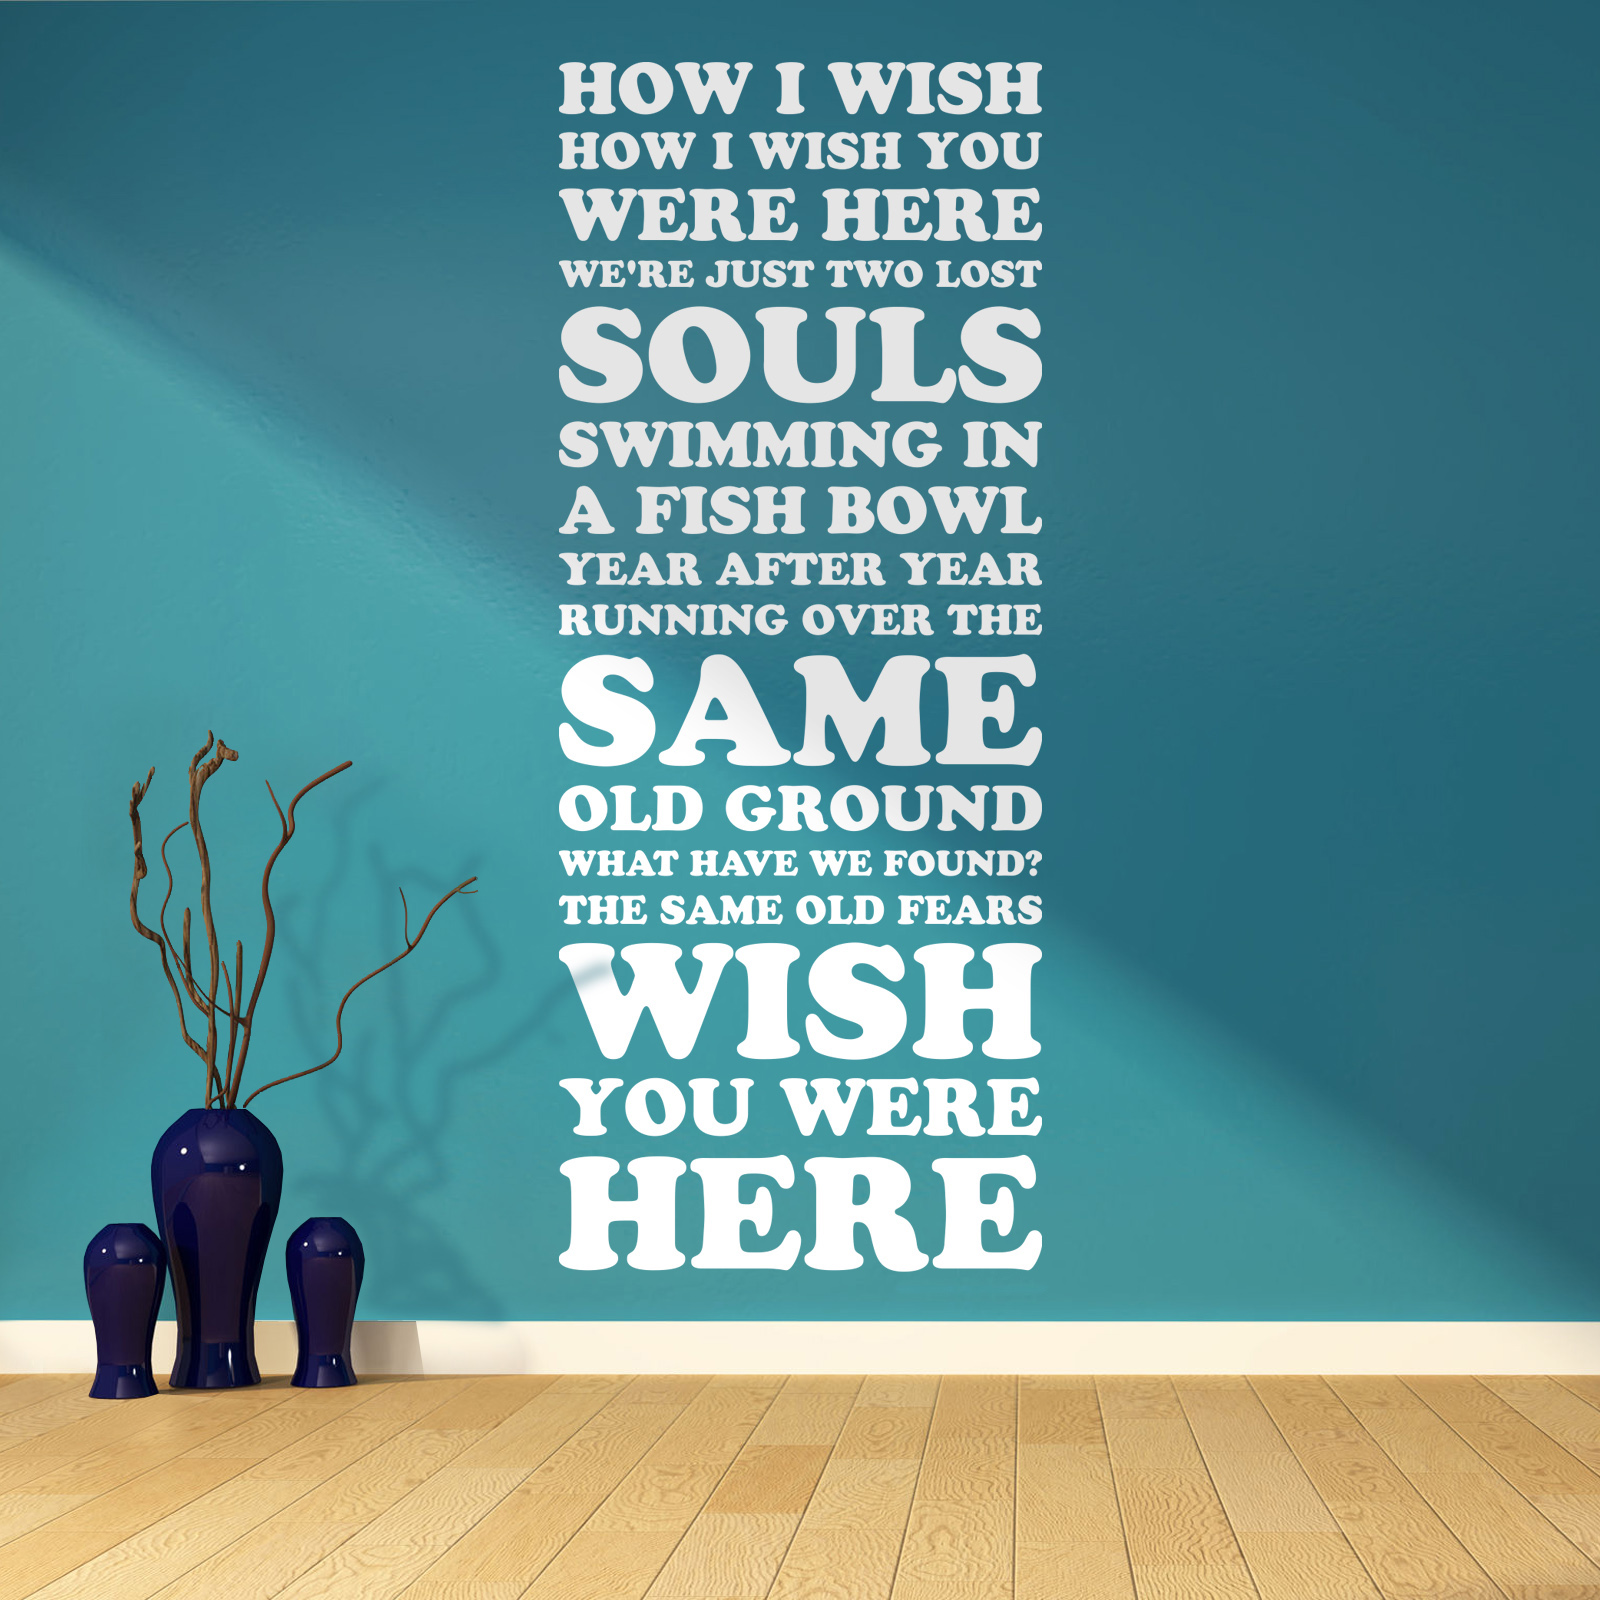 Pink Floyd Wish You Were Here Song Lyrics Two Lost Souls Vinyl Wall Art Sticker EBay